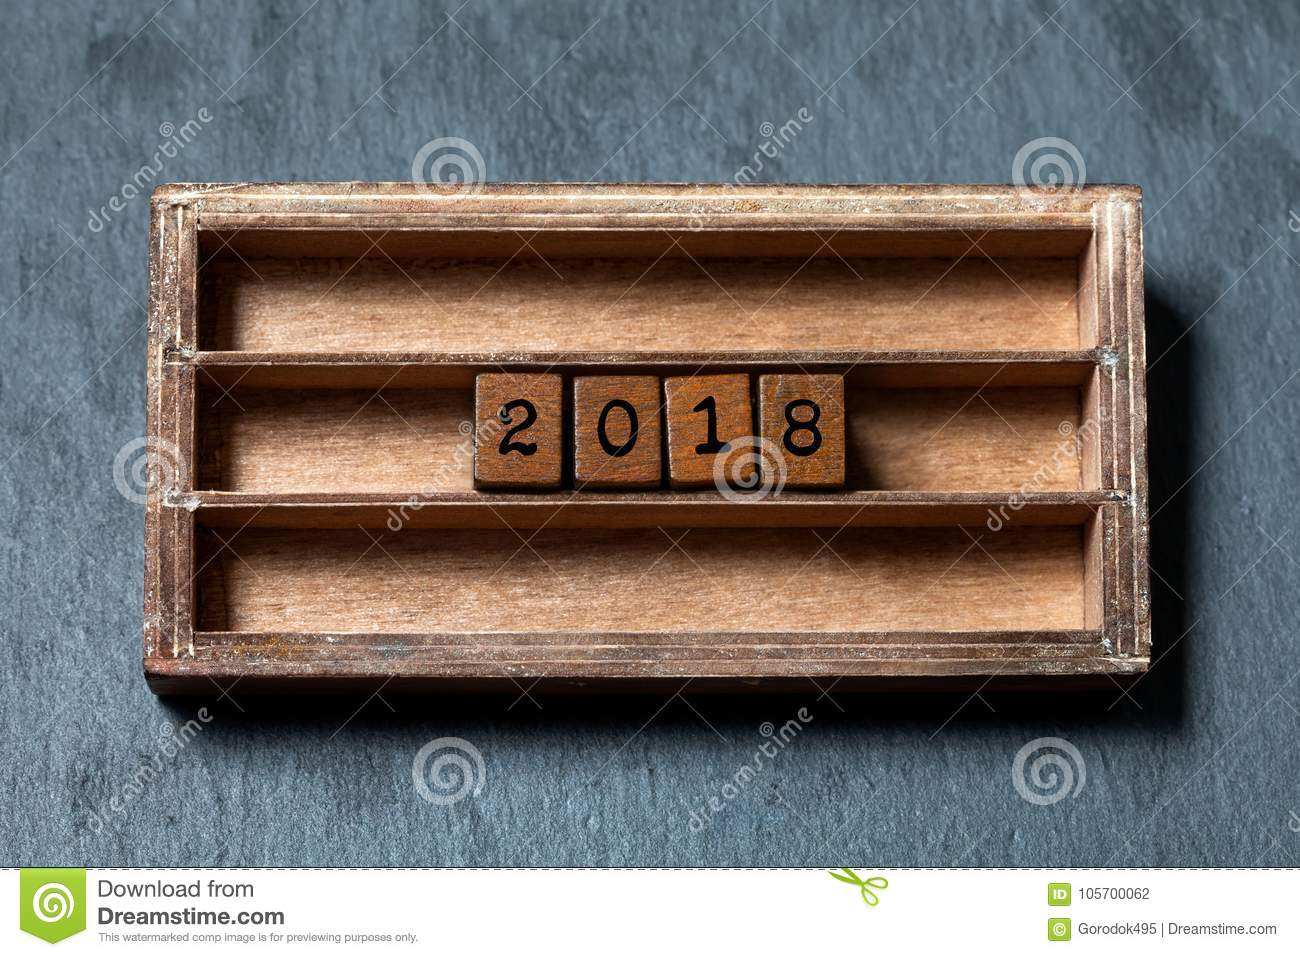 2018 year greeting card invitation poster. Vintage box, wooden cubes with old style letters. Gray stone textured